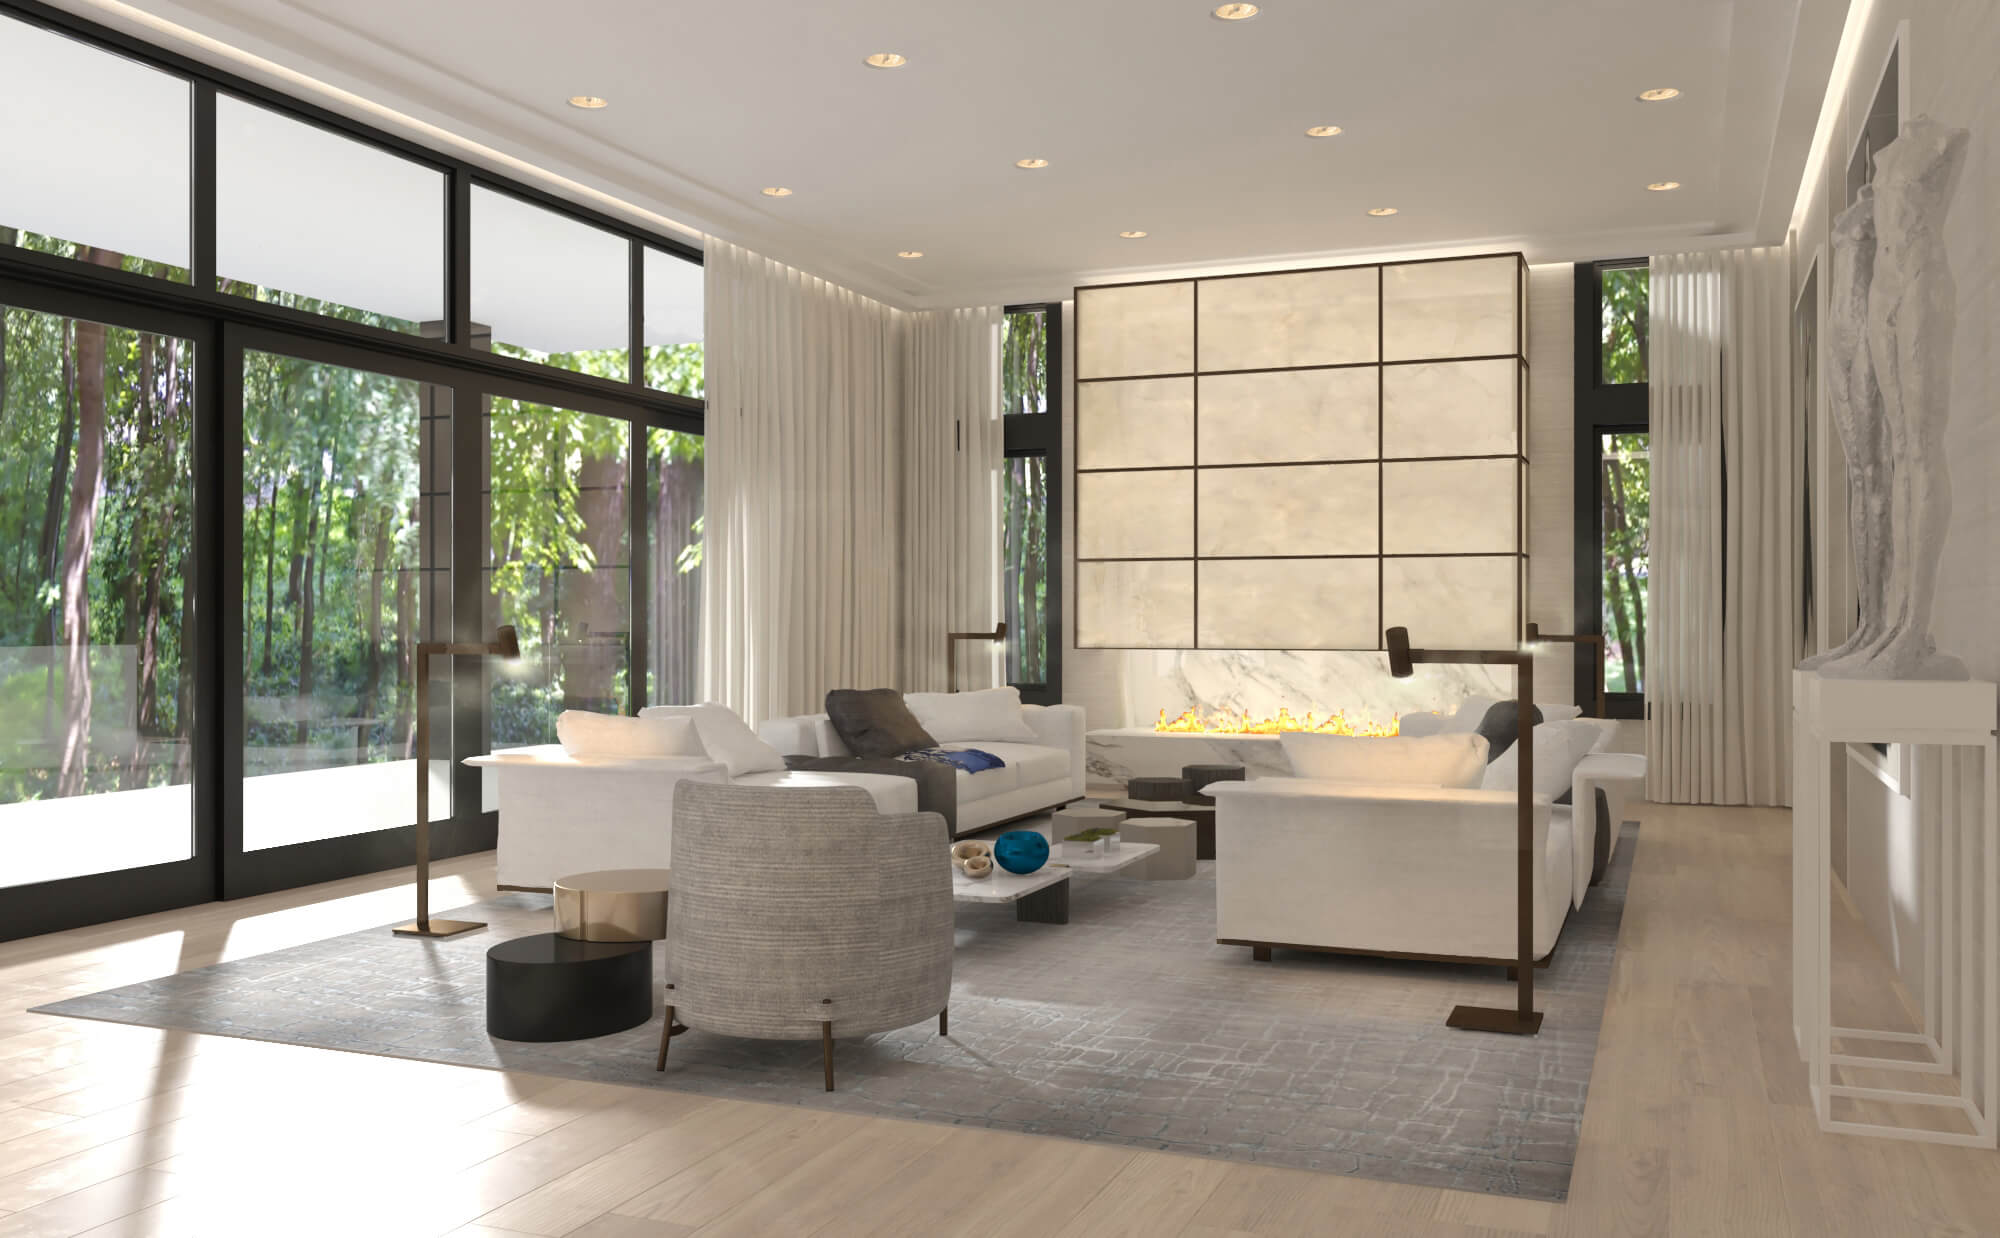 RIVER VALLEY RESIDENCE by Britto Charette Interior Design